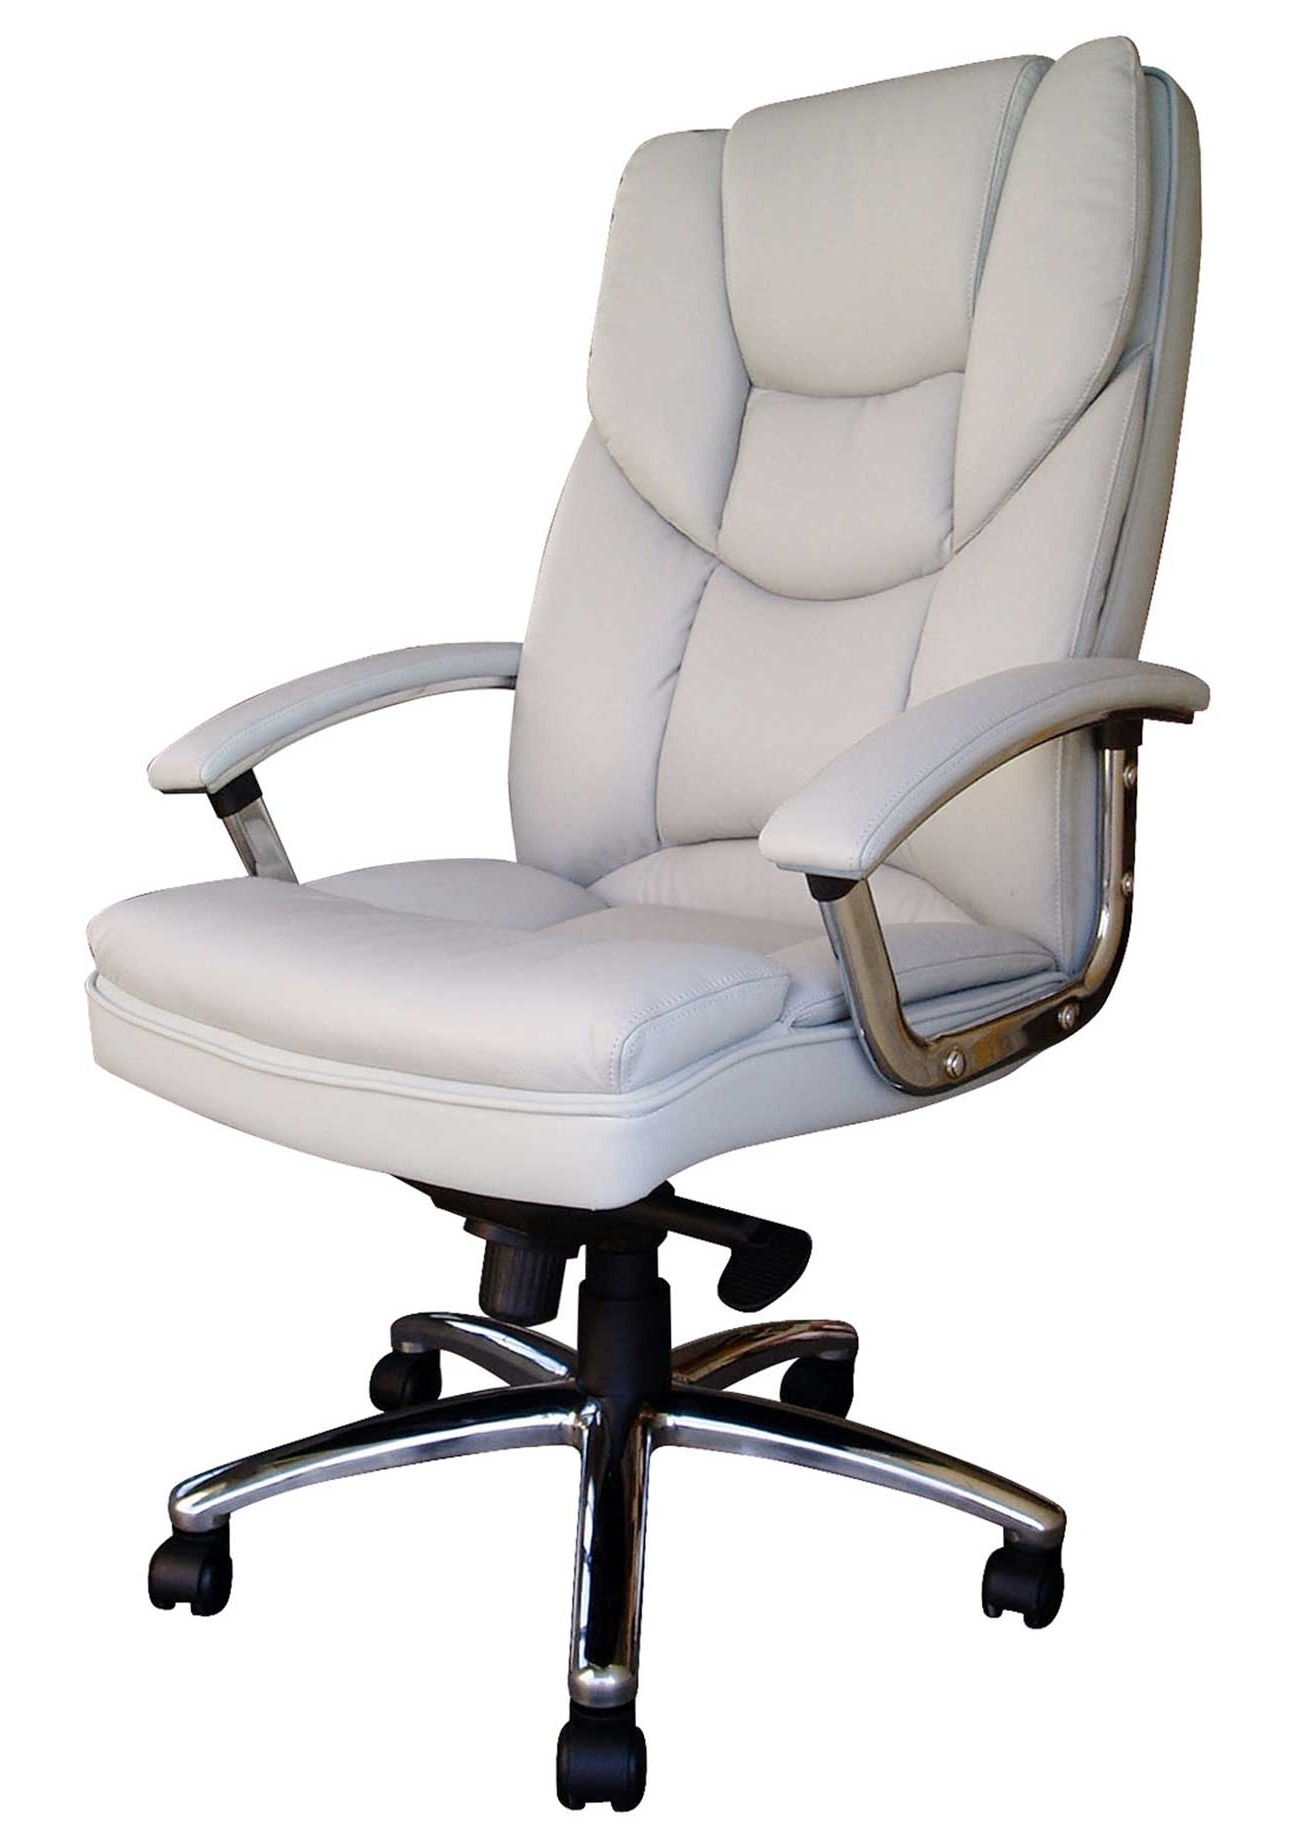 Executive Office Swivel Chairs Regarding Well Known Funiture: White Office Furniture Ideas Using White Leather Swivel (View 12 of 20)